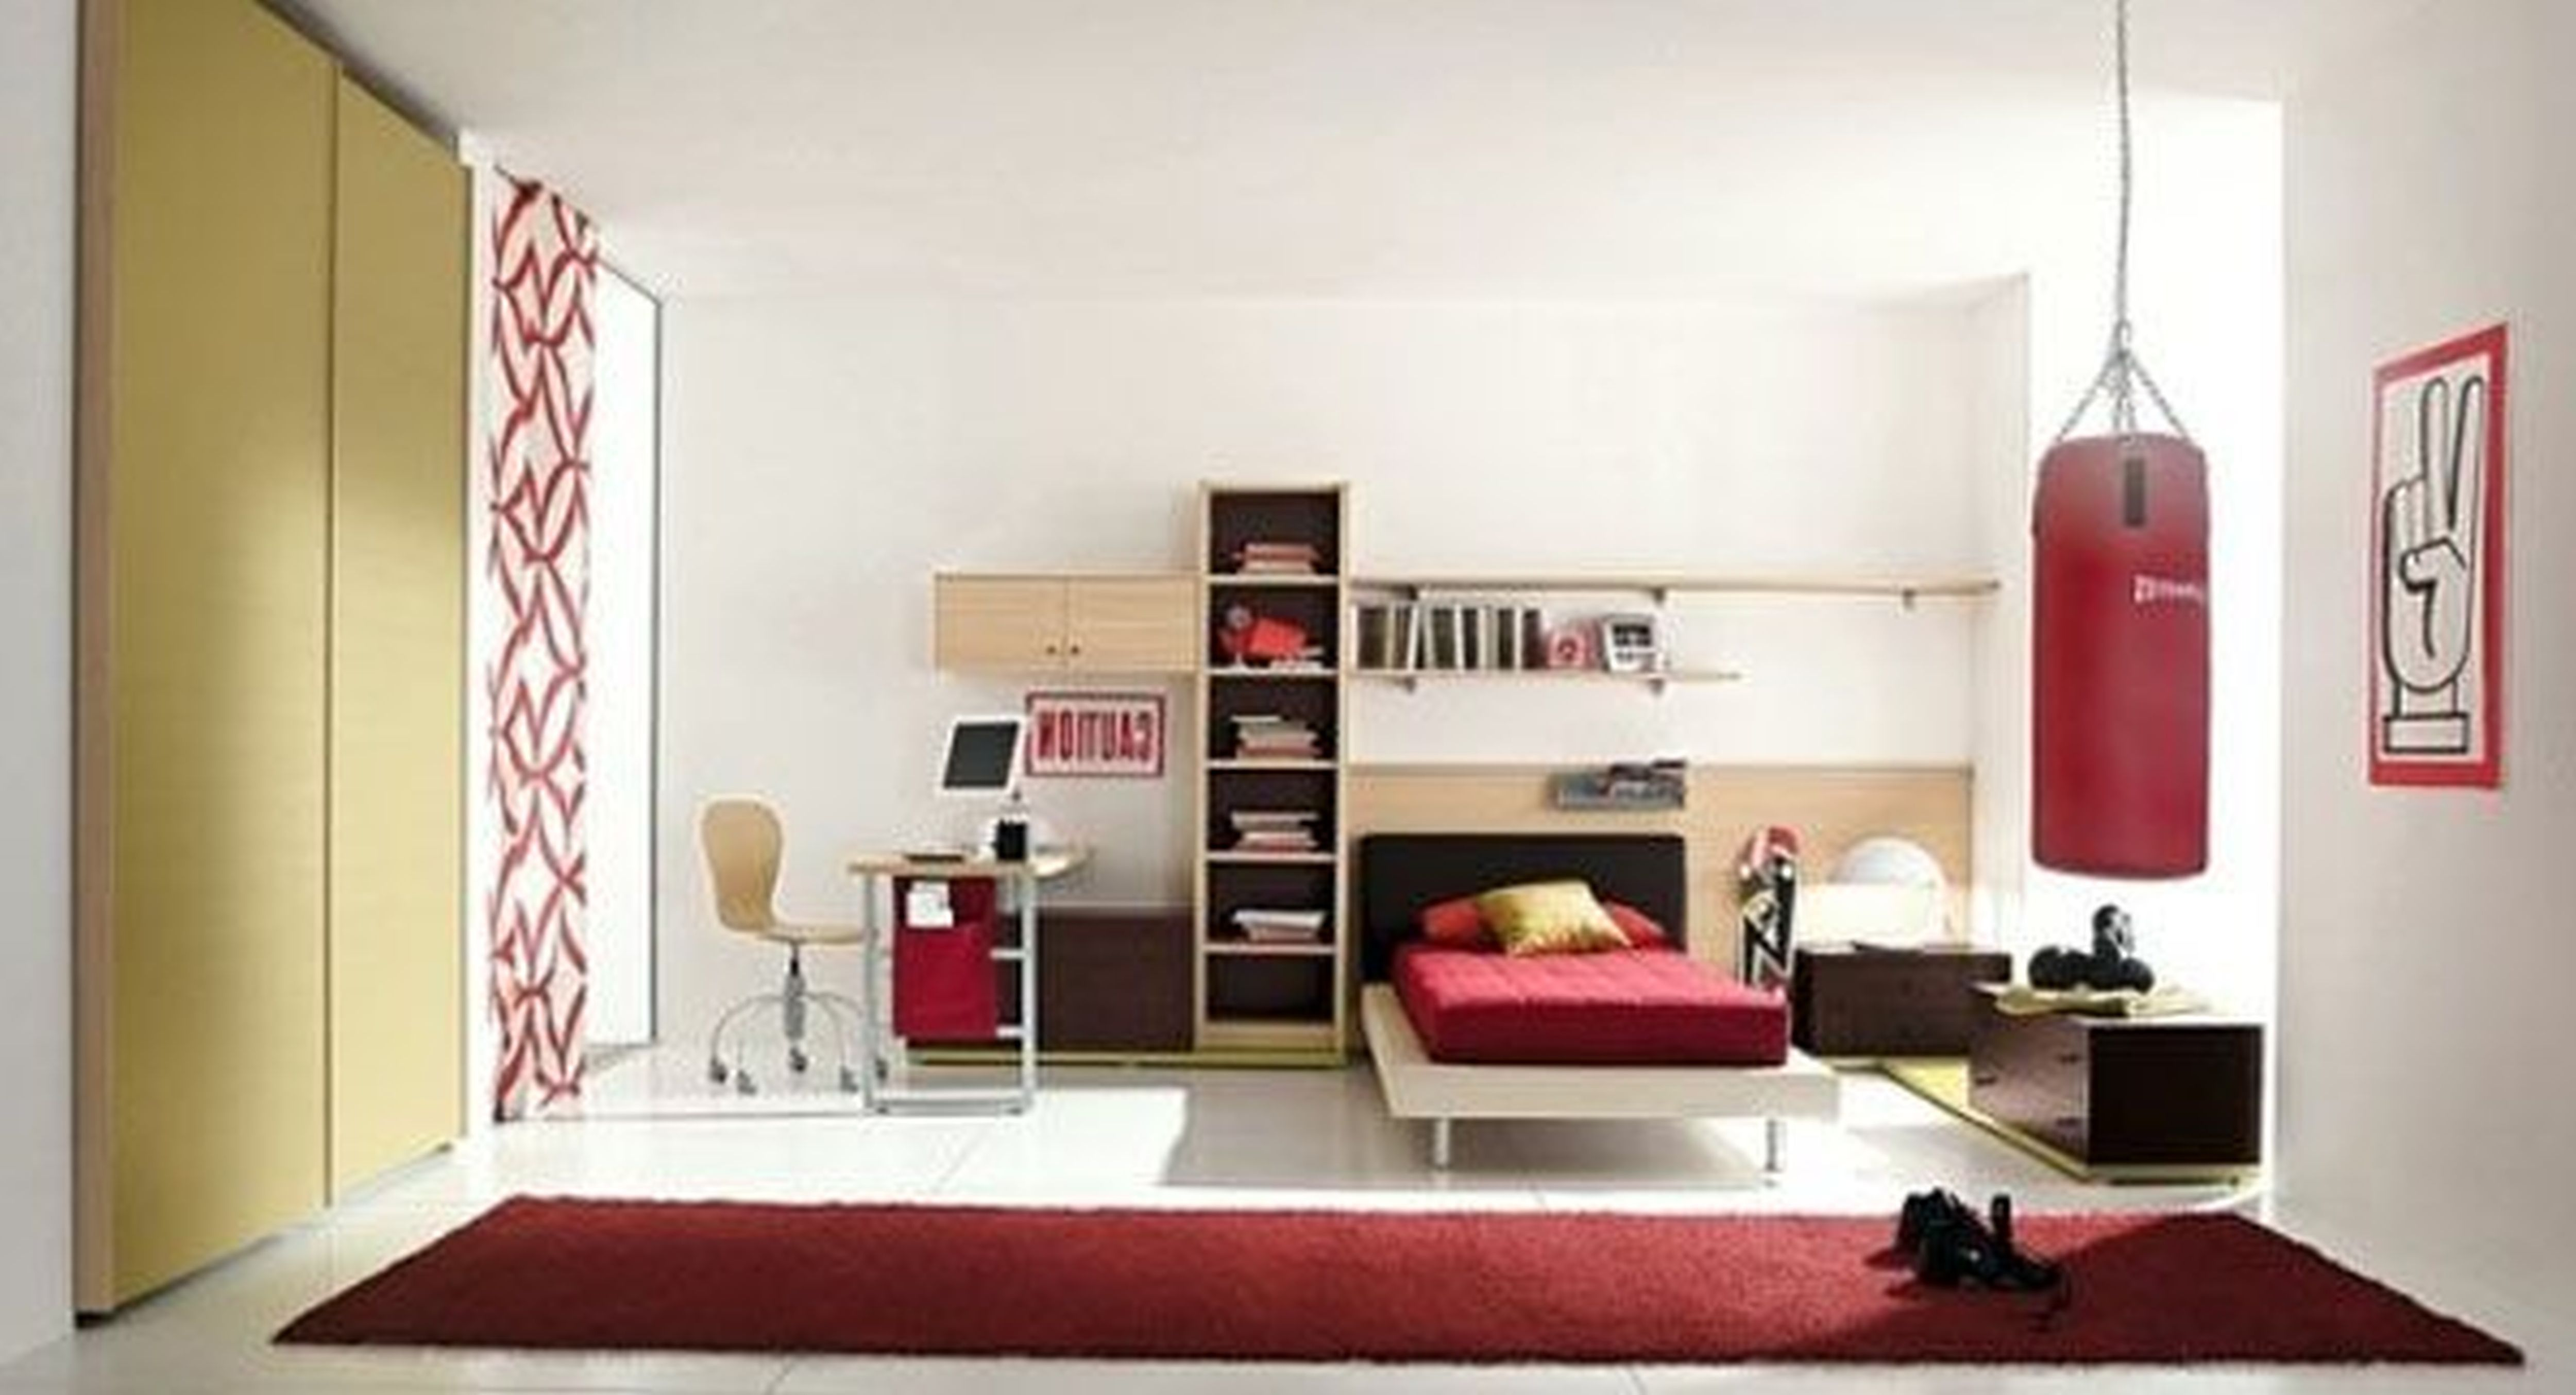 Design Kids Bedroom New Bedroom Room Designs For Teens Really Cool Beds Teenagers Single Decorating Design